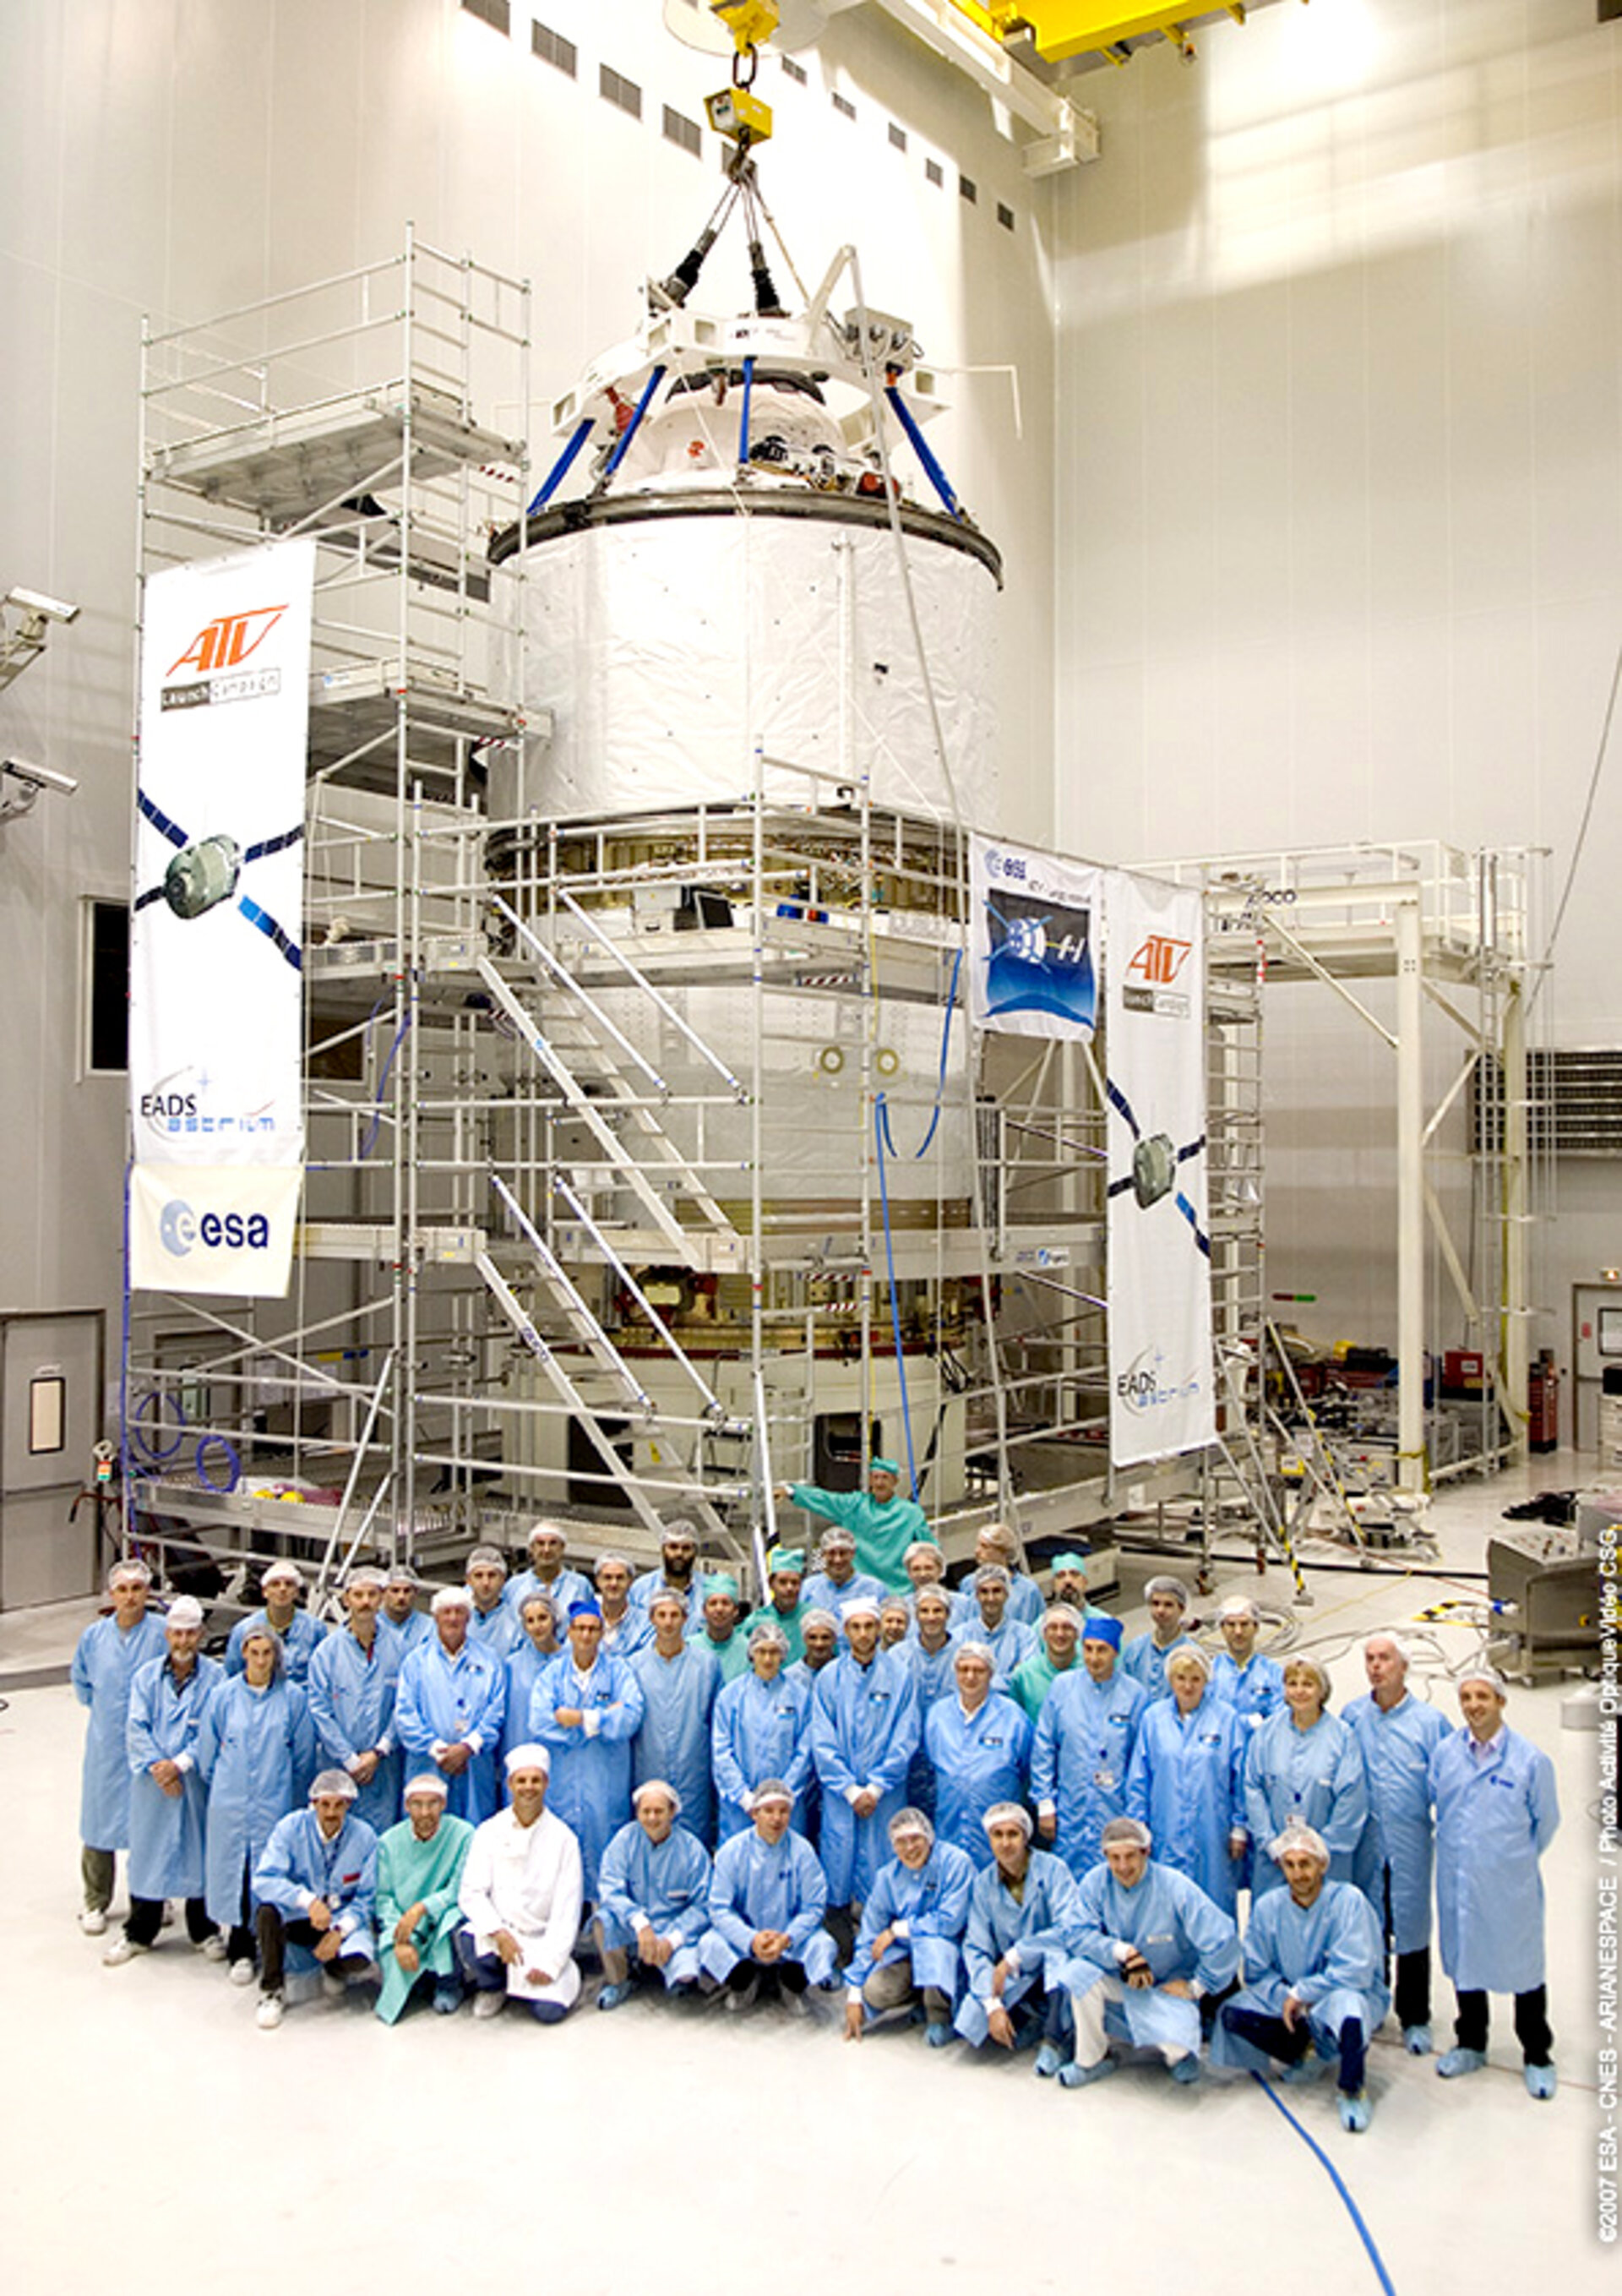 Members of the Jules Verne launch integration team in front of the spacecraft at Europe's Spaceport in Kourou, French Guiana